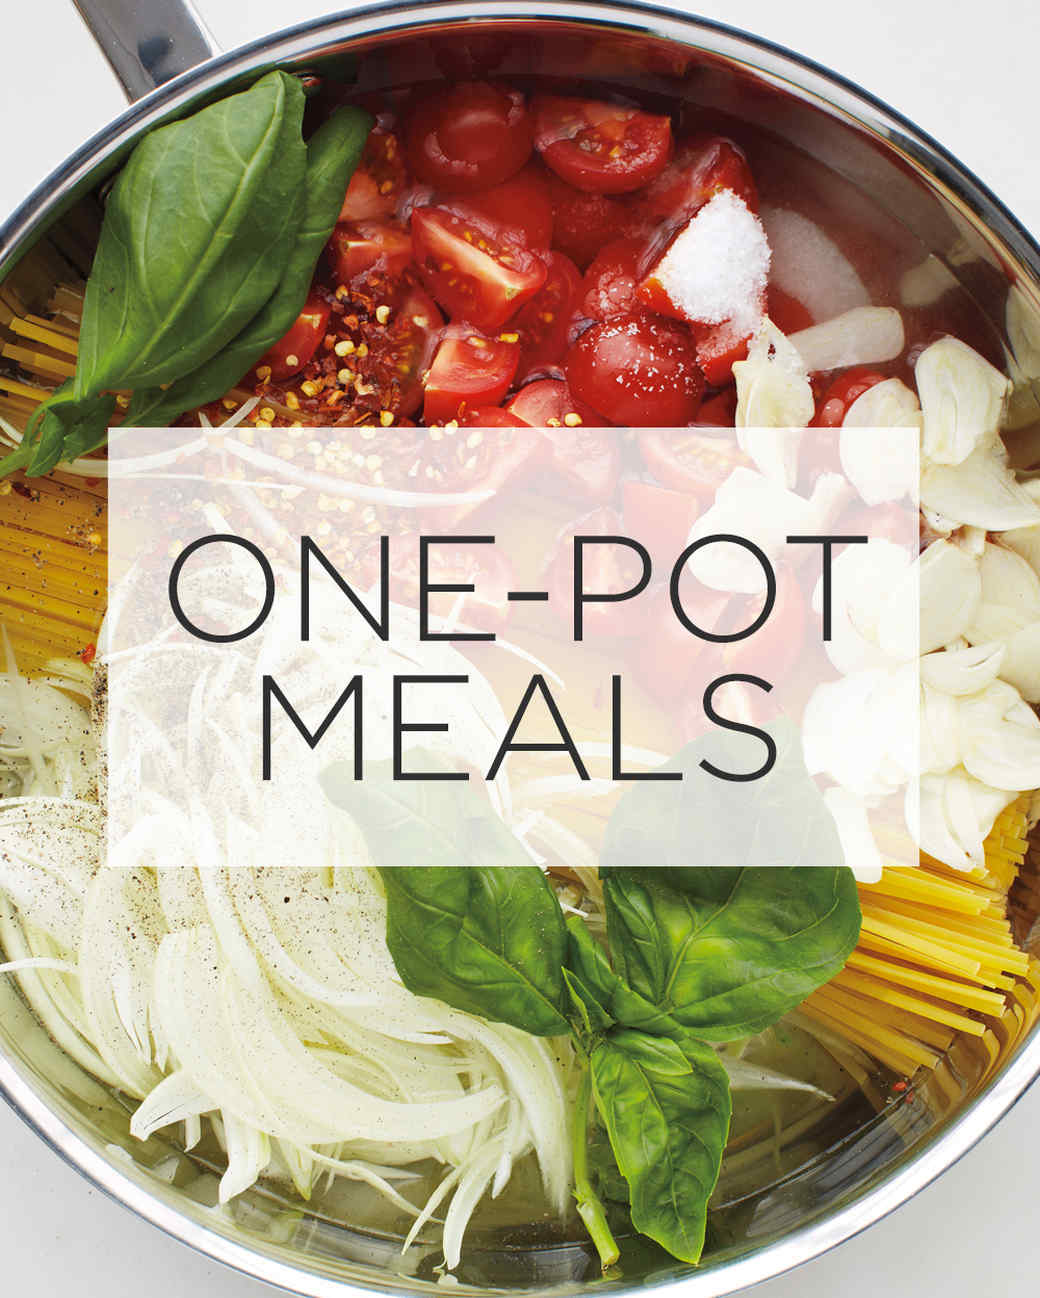 One-pan meals are a mom's best friend. This mom's, anyways. Especially on busy weeknights when the thought of cooking a meal for five seems daunting, and there are activities to get to.